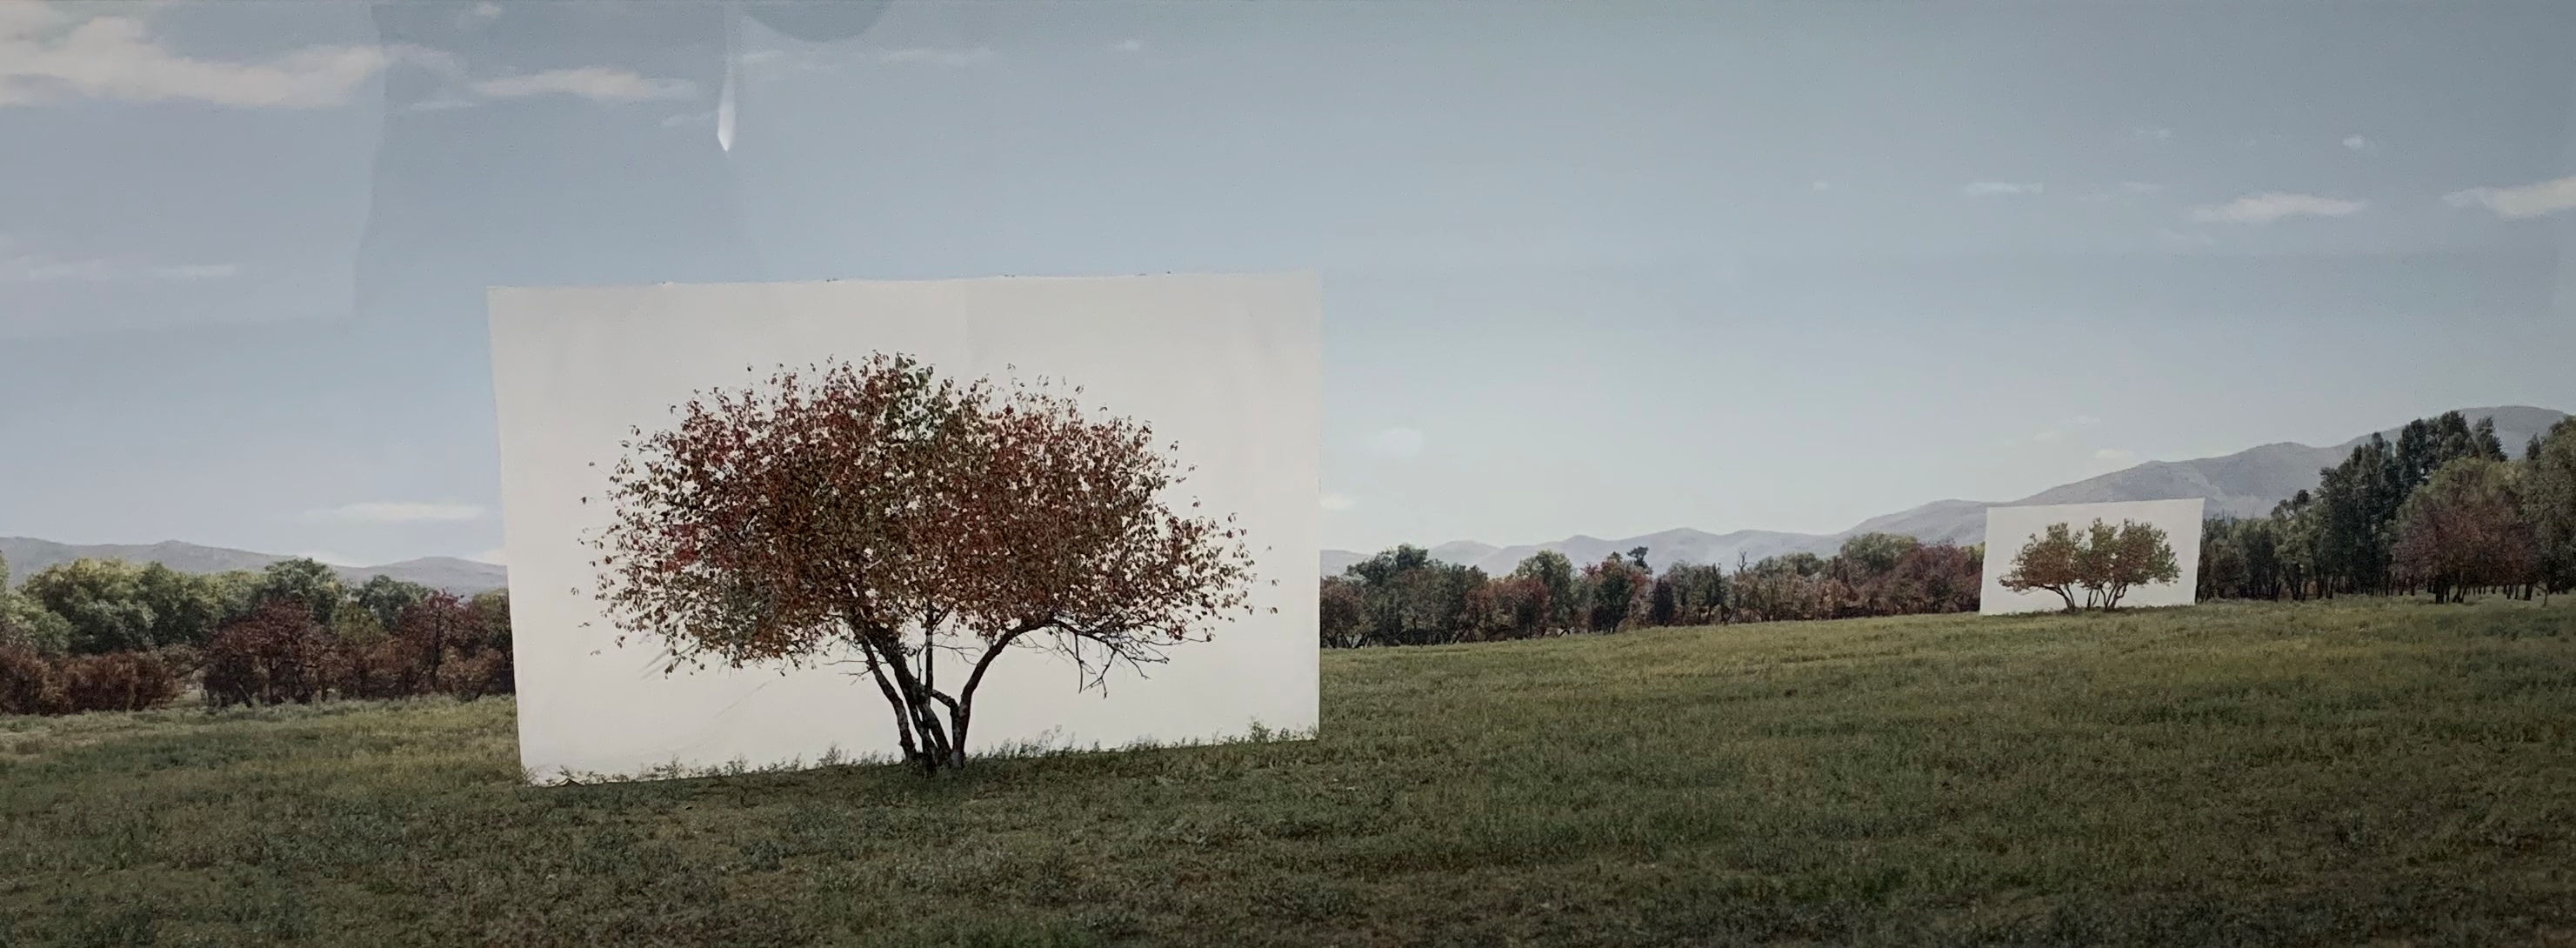 Tree No 7 artwork by Myoung Ho Lee - art listed for sale on Artplode